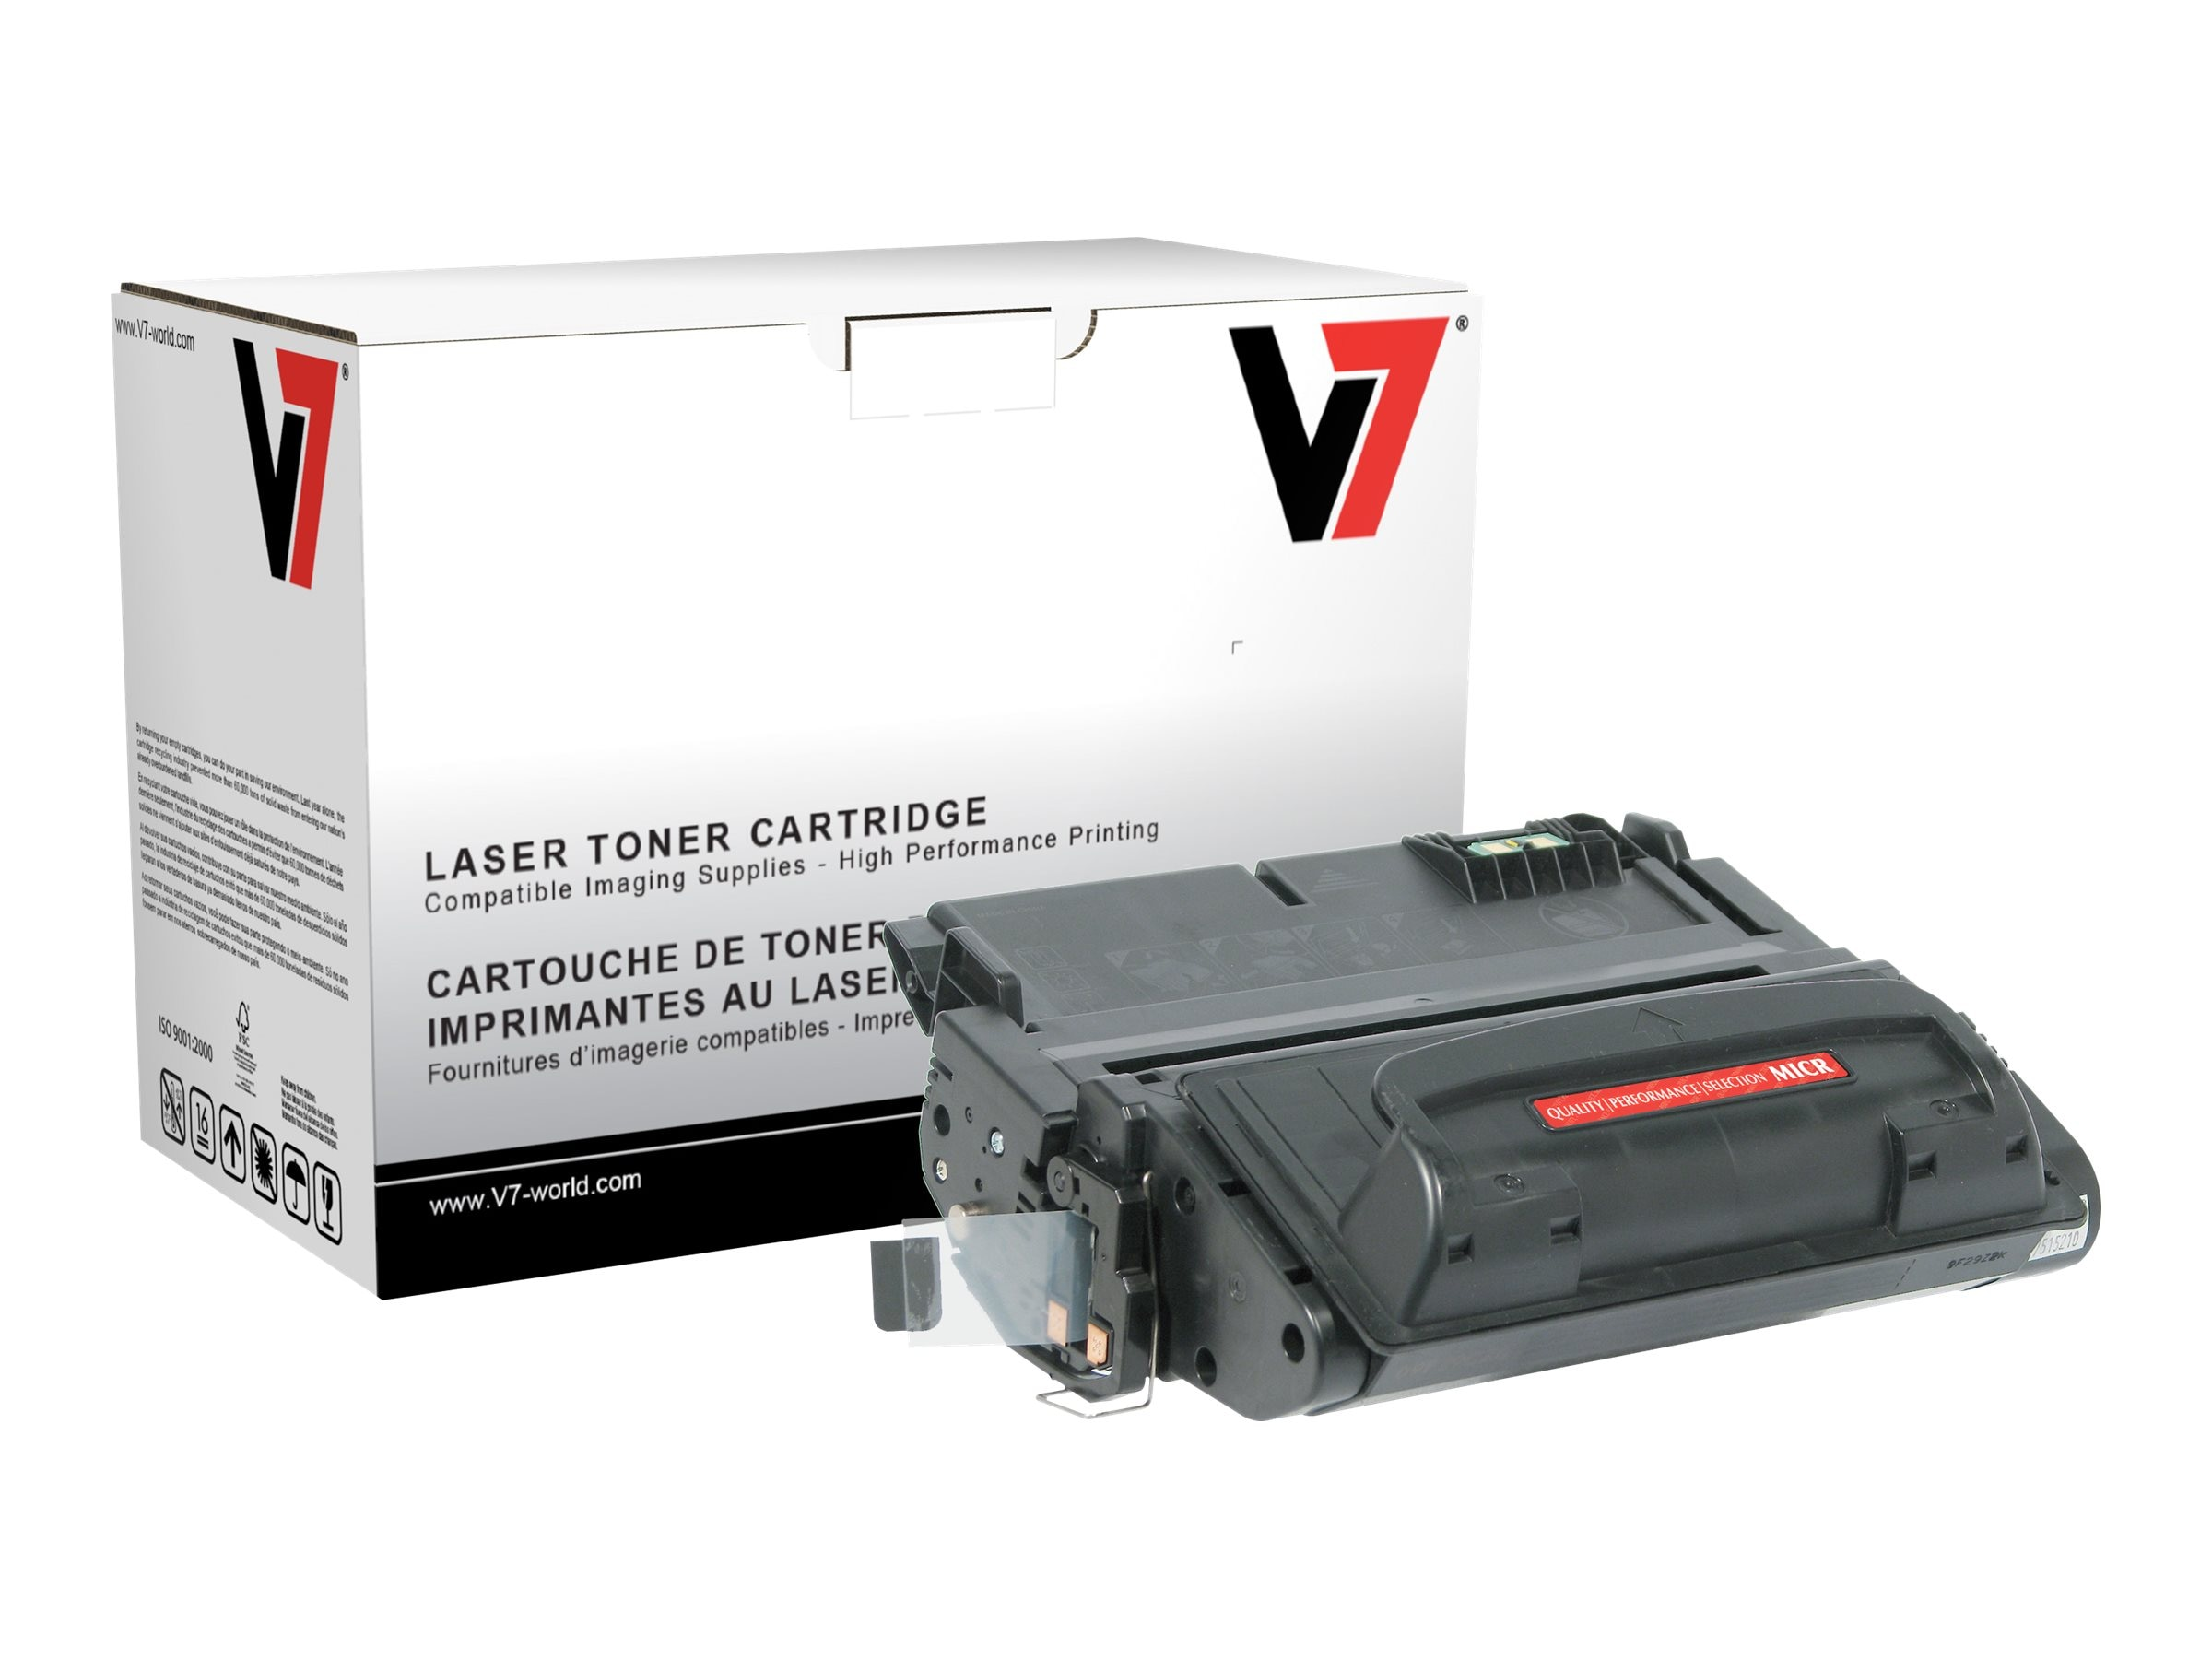 V7 Q5942A MICR Black Toner Cartridge for HP LaserJet 4240 (TAA Compliant)